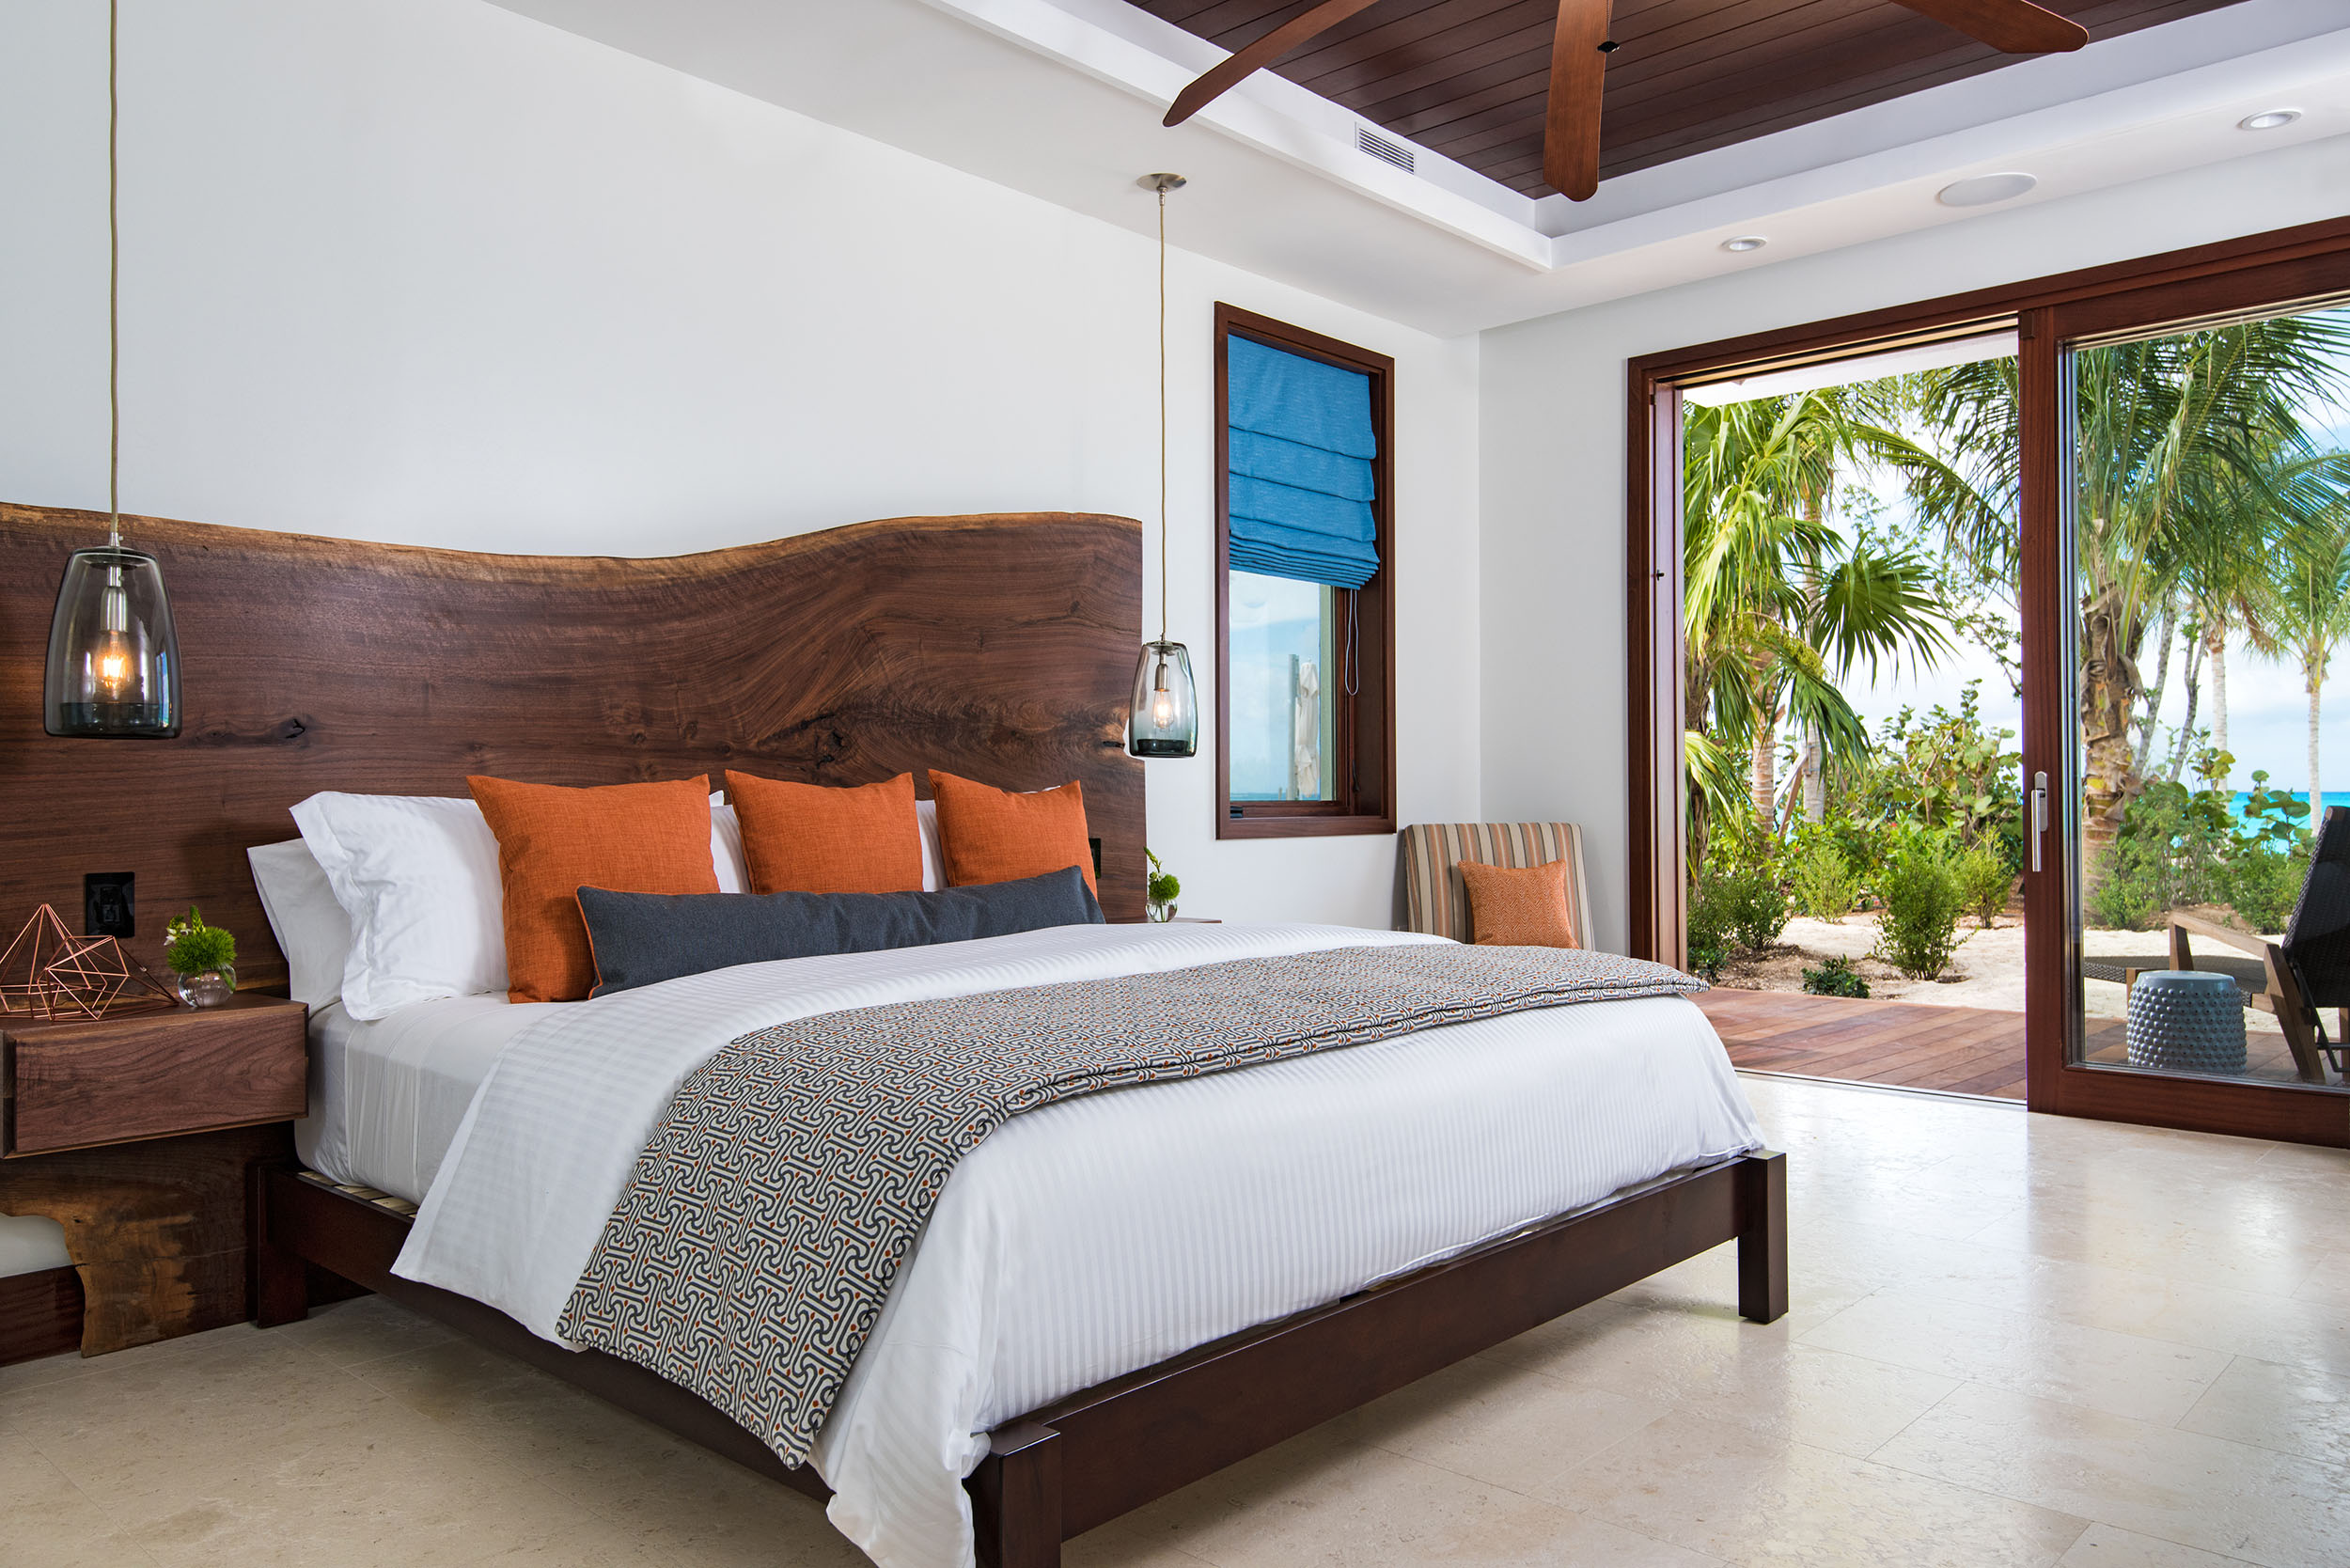 Hawksbill - view of one of the bedrooms